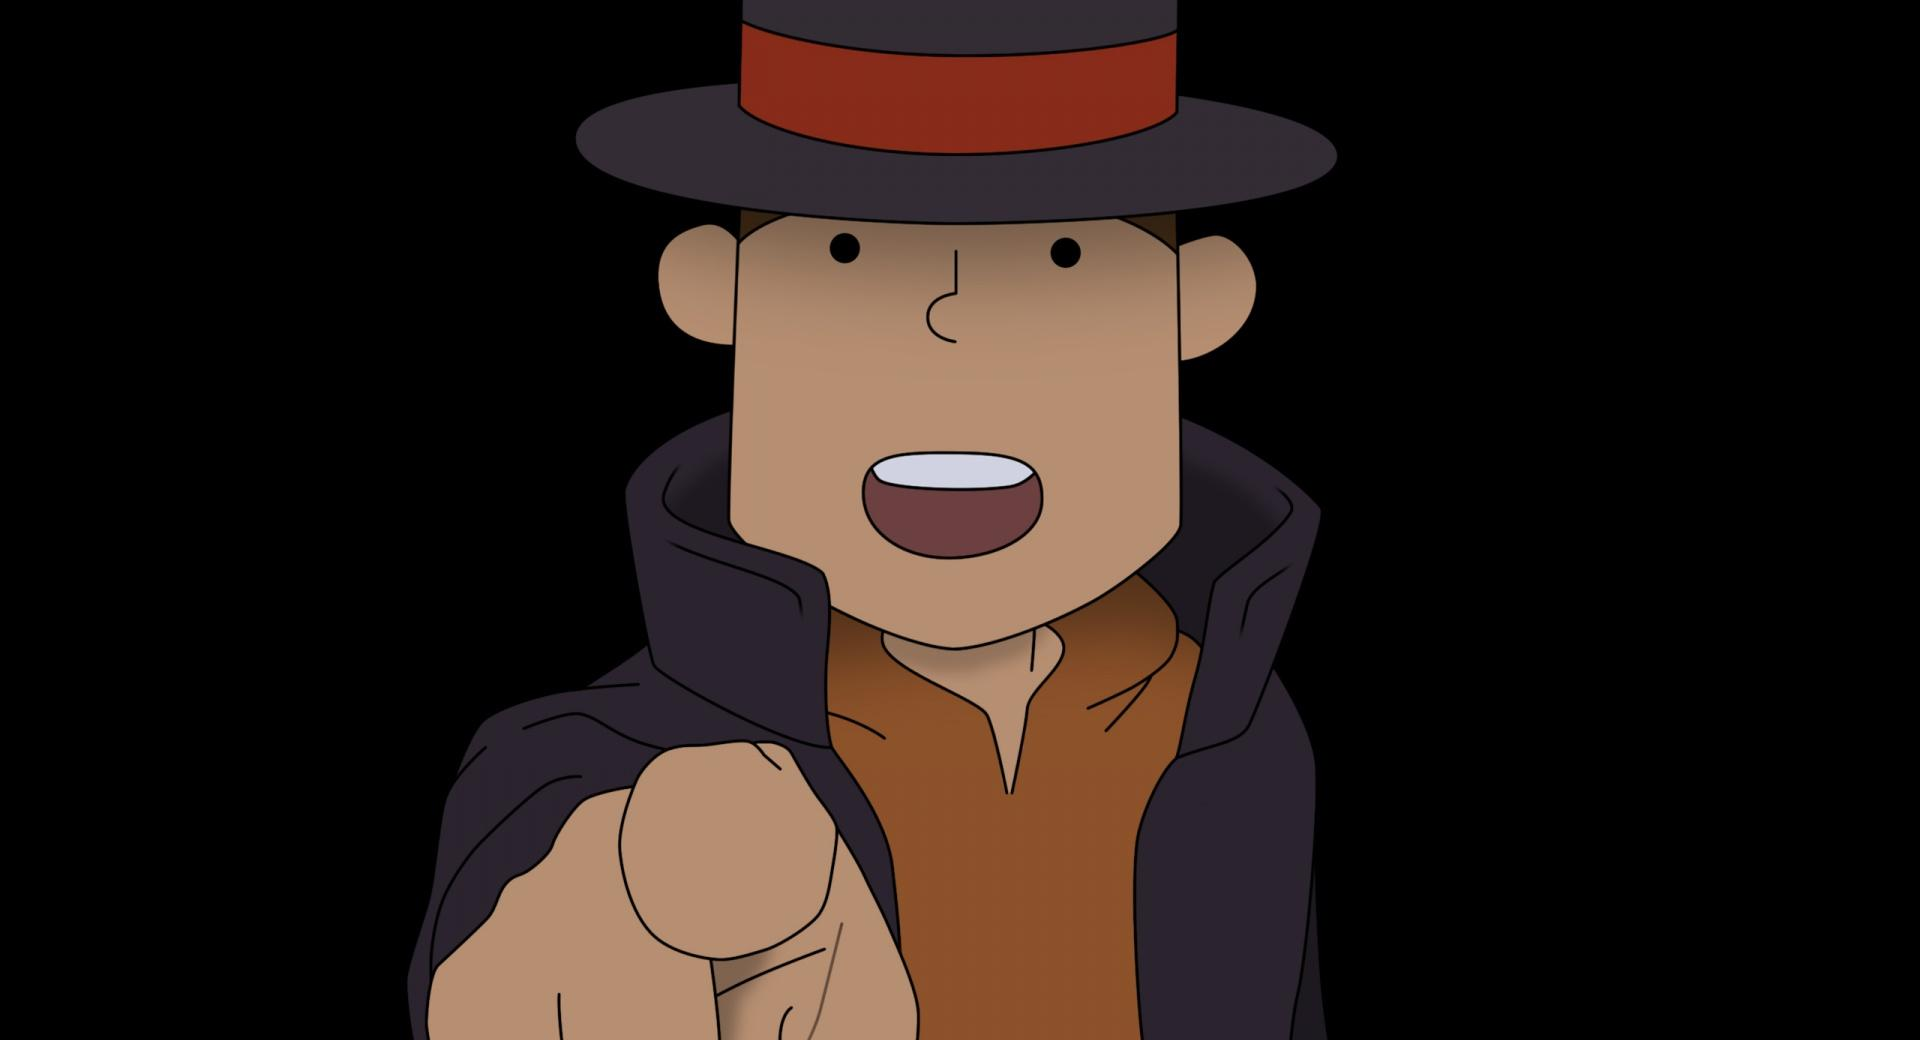 Professor Layton wallpapers HD quality